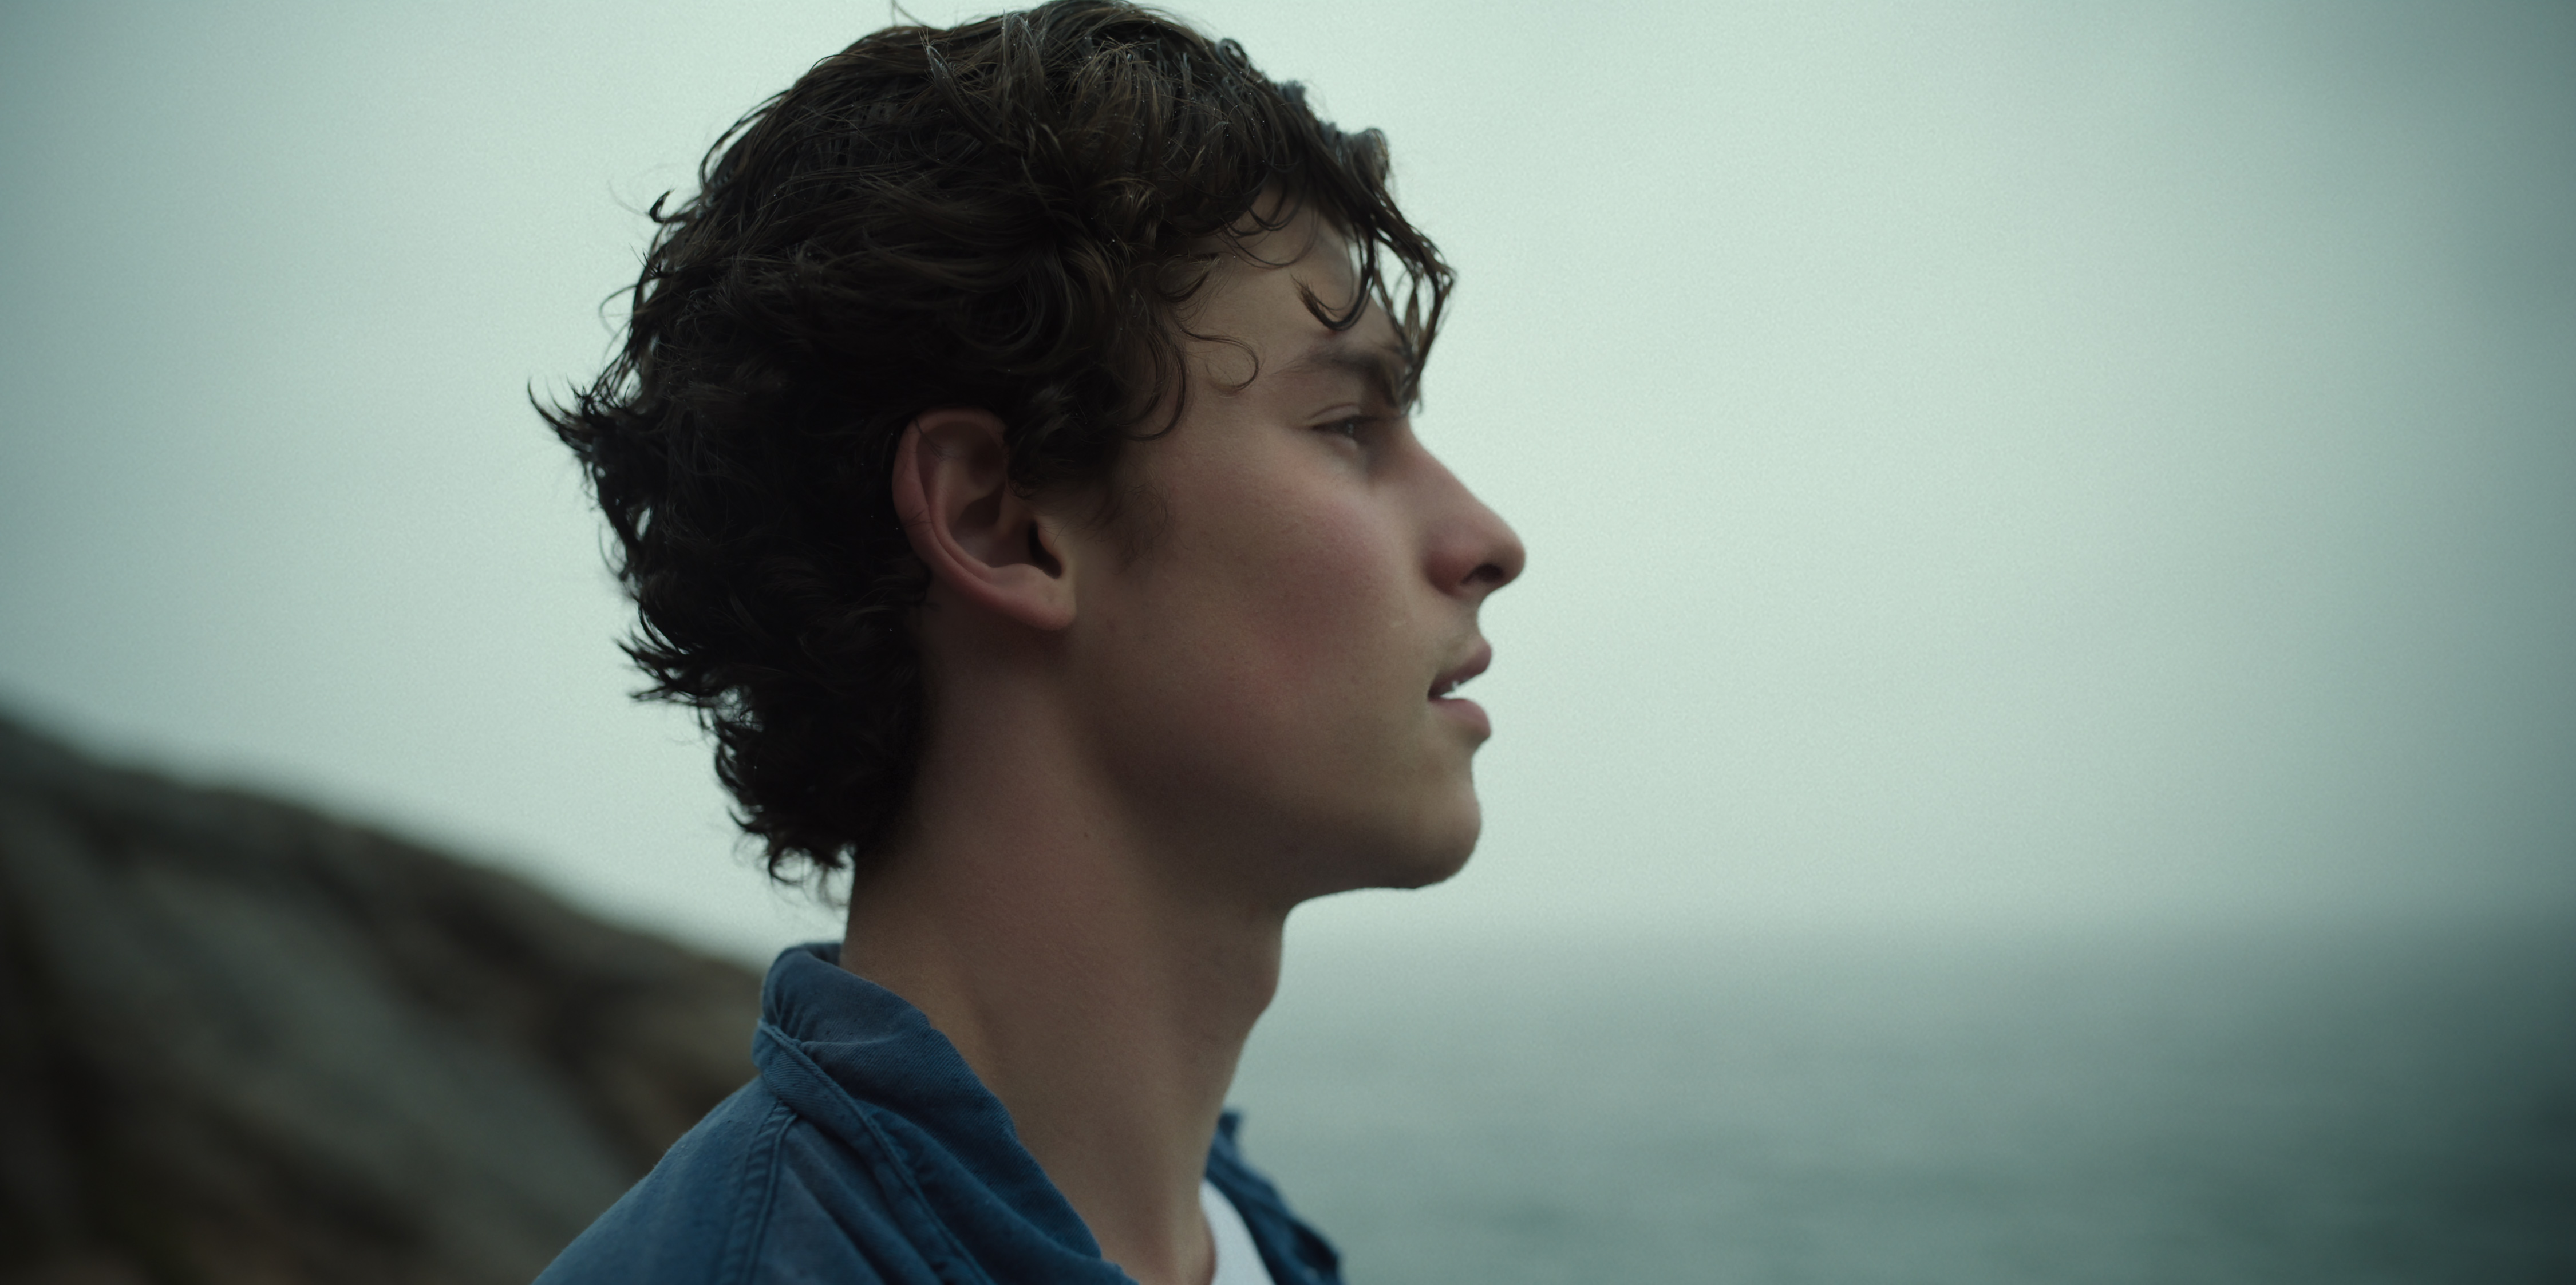 SHAWN MENDES - IN WONDER Shawn Mendes in SHAWN MENDES - IN WONDER. Cr. NETFLIX 2020